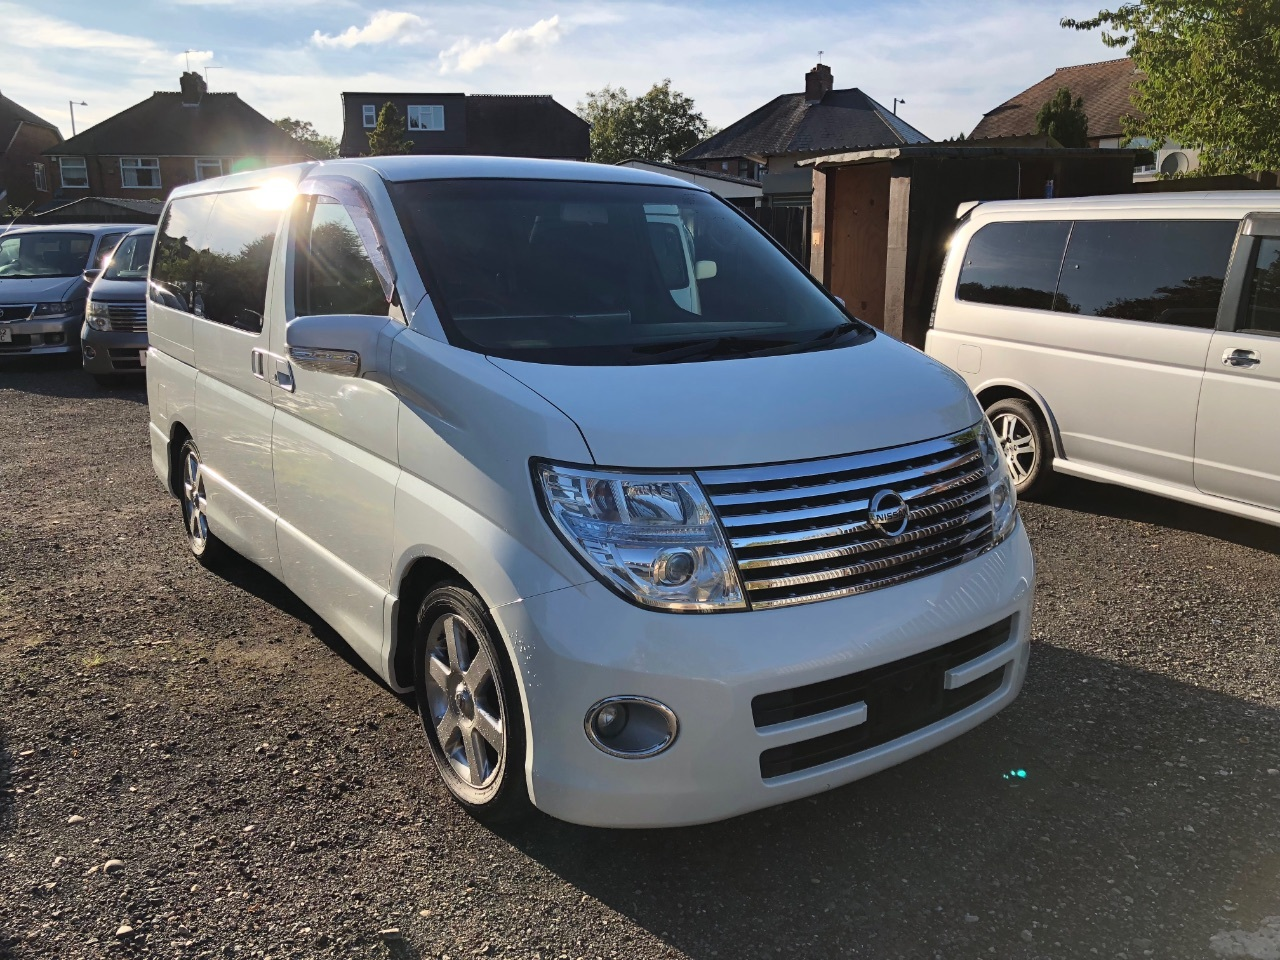 Nissan Elgrand 3.5 V.6 auto petrol homy highway star 4wd mpv 8seater fresh import Four Wheel Drive Petrol White